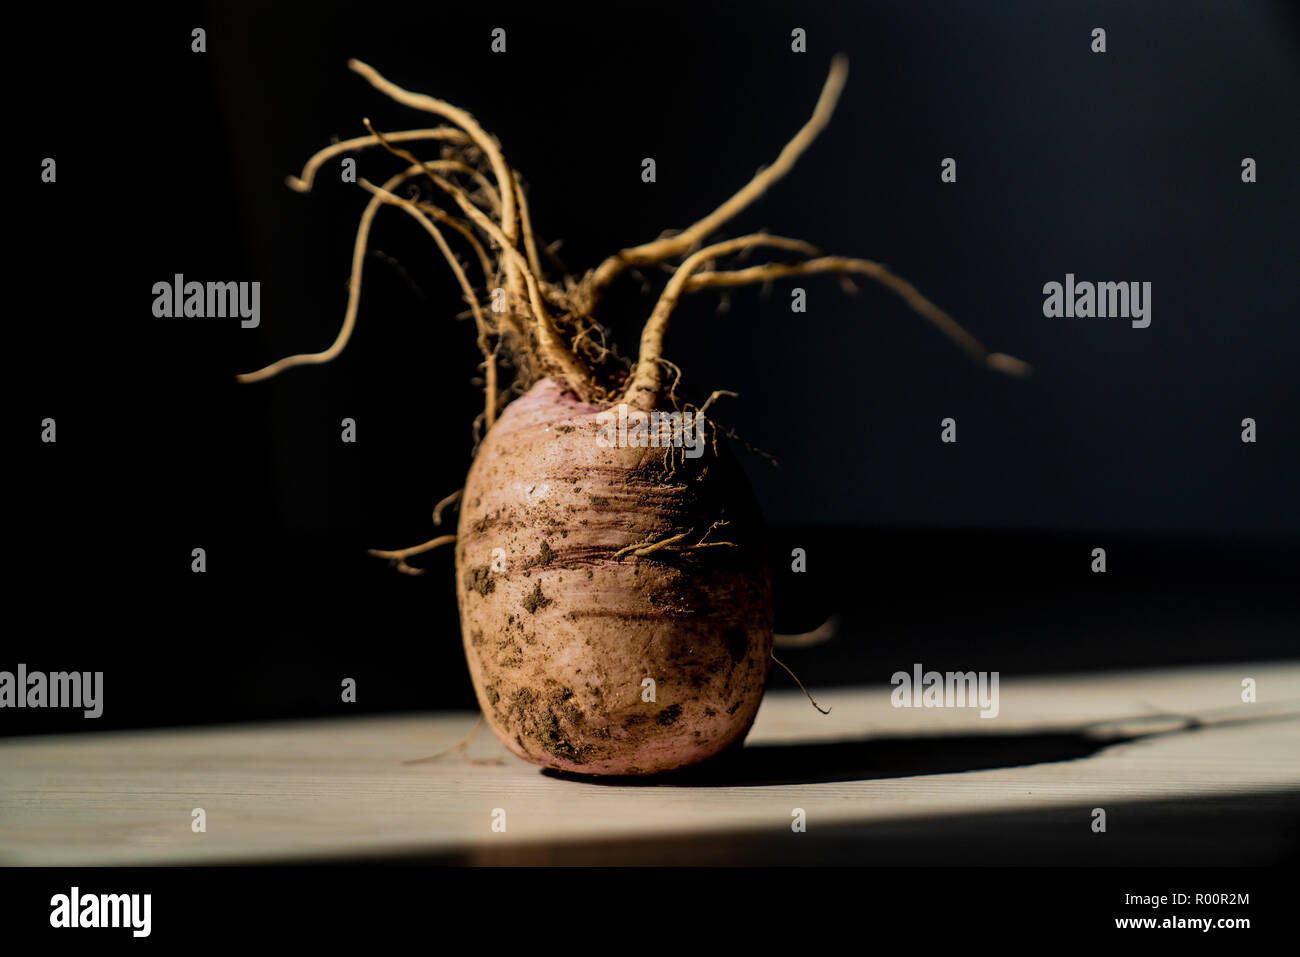 White radish background with roots on the table in light and shade Stock Photo